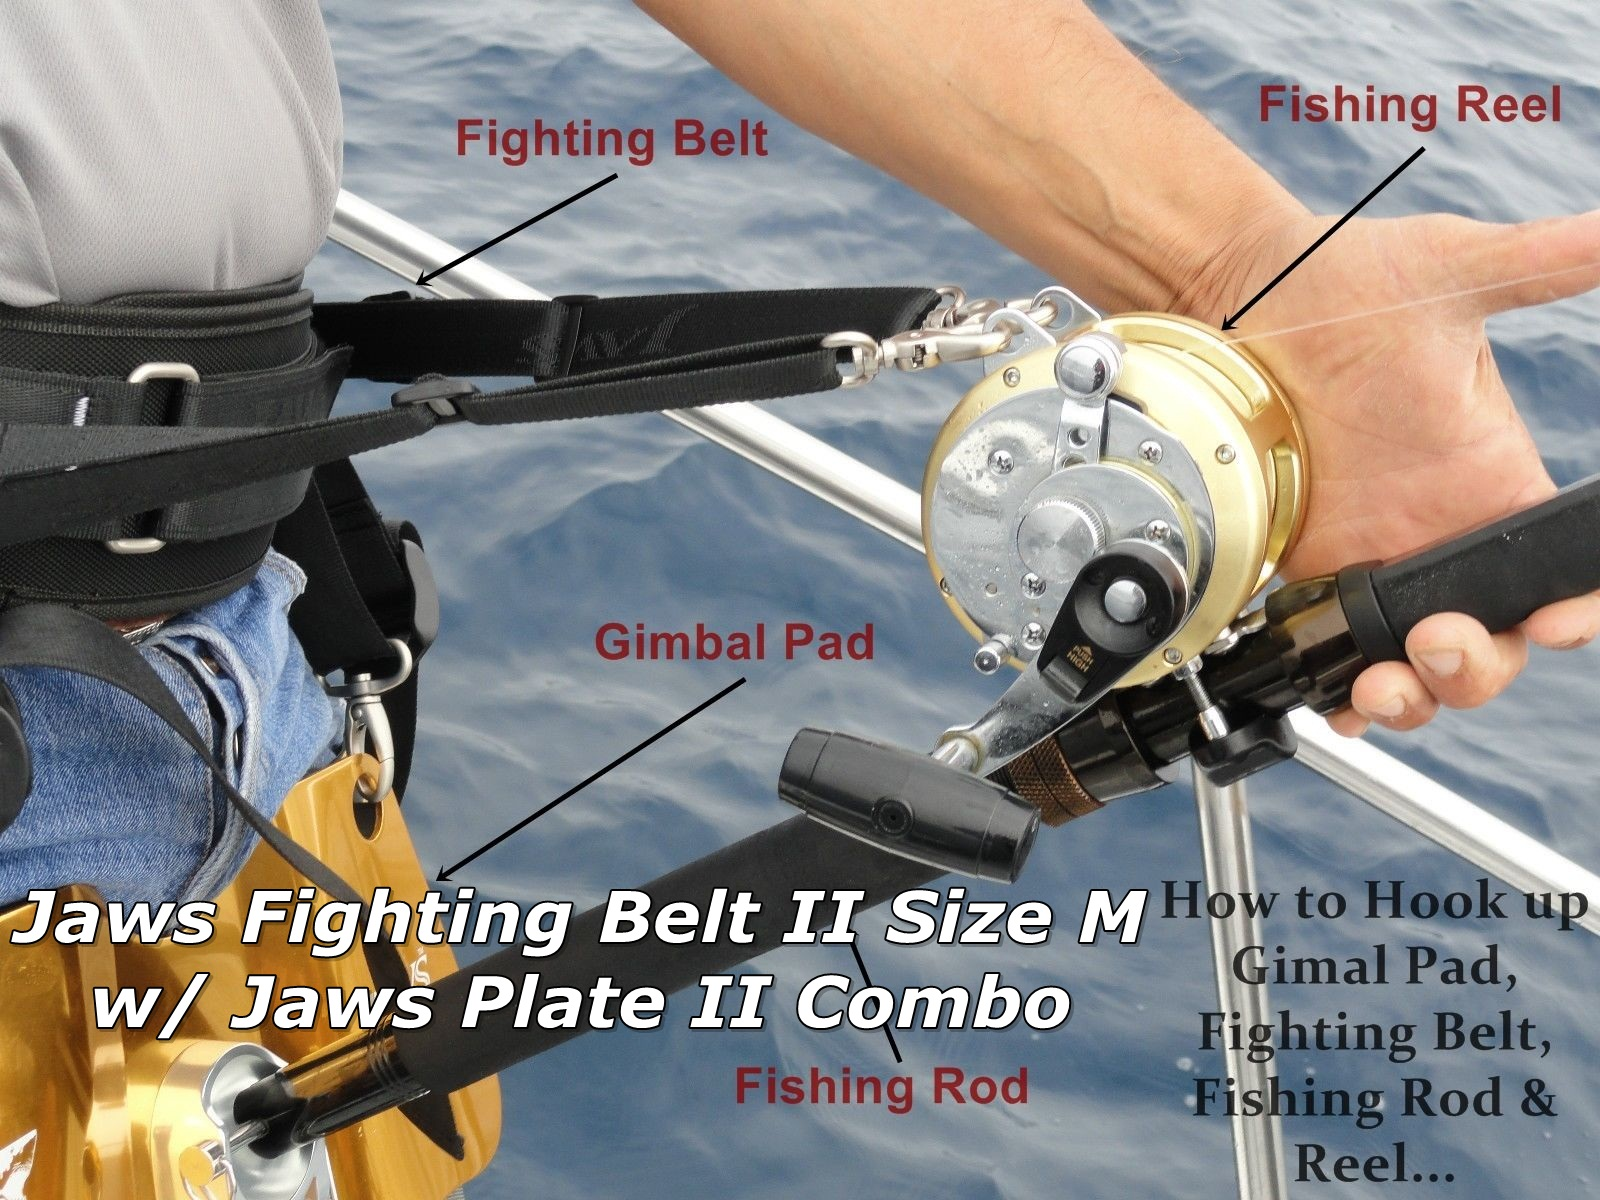 Flighting Belt Size M with Gimbal Pad II